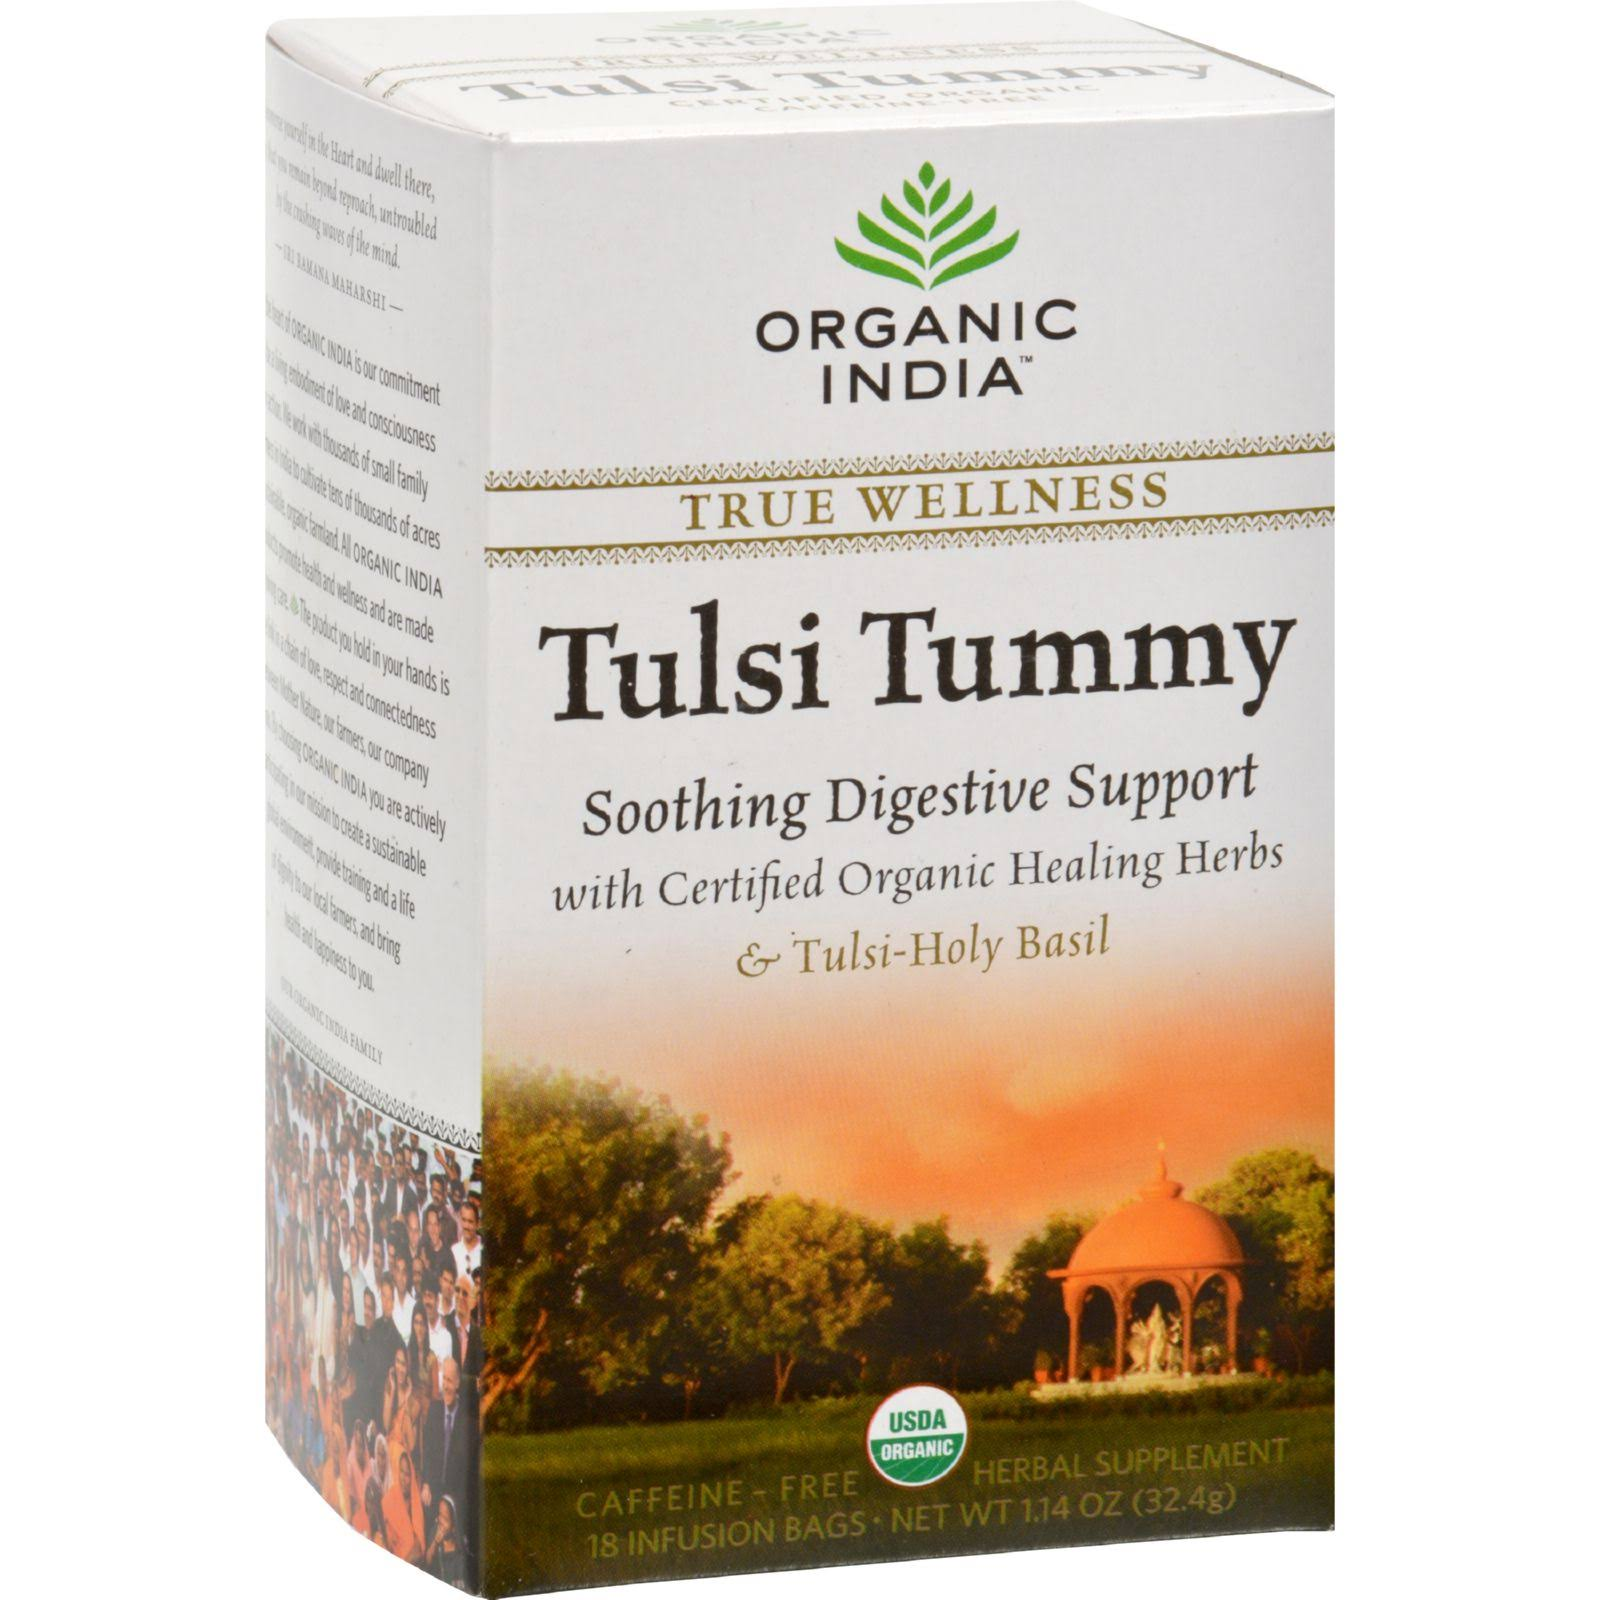 Organic India Tulsi Holy Basil Tea - 18 Infusion Bags